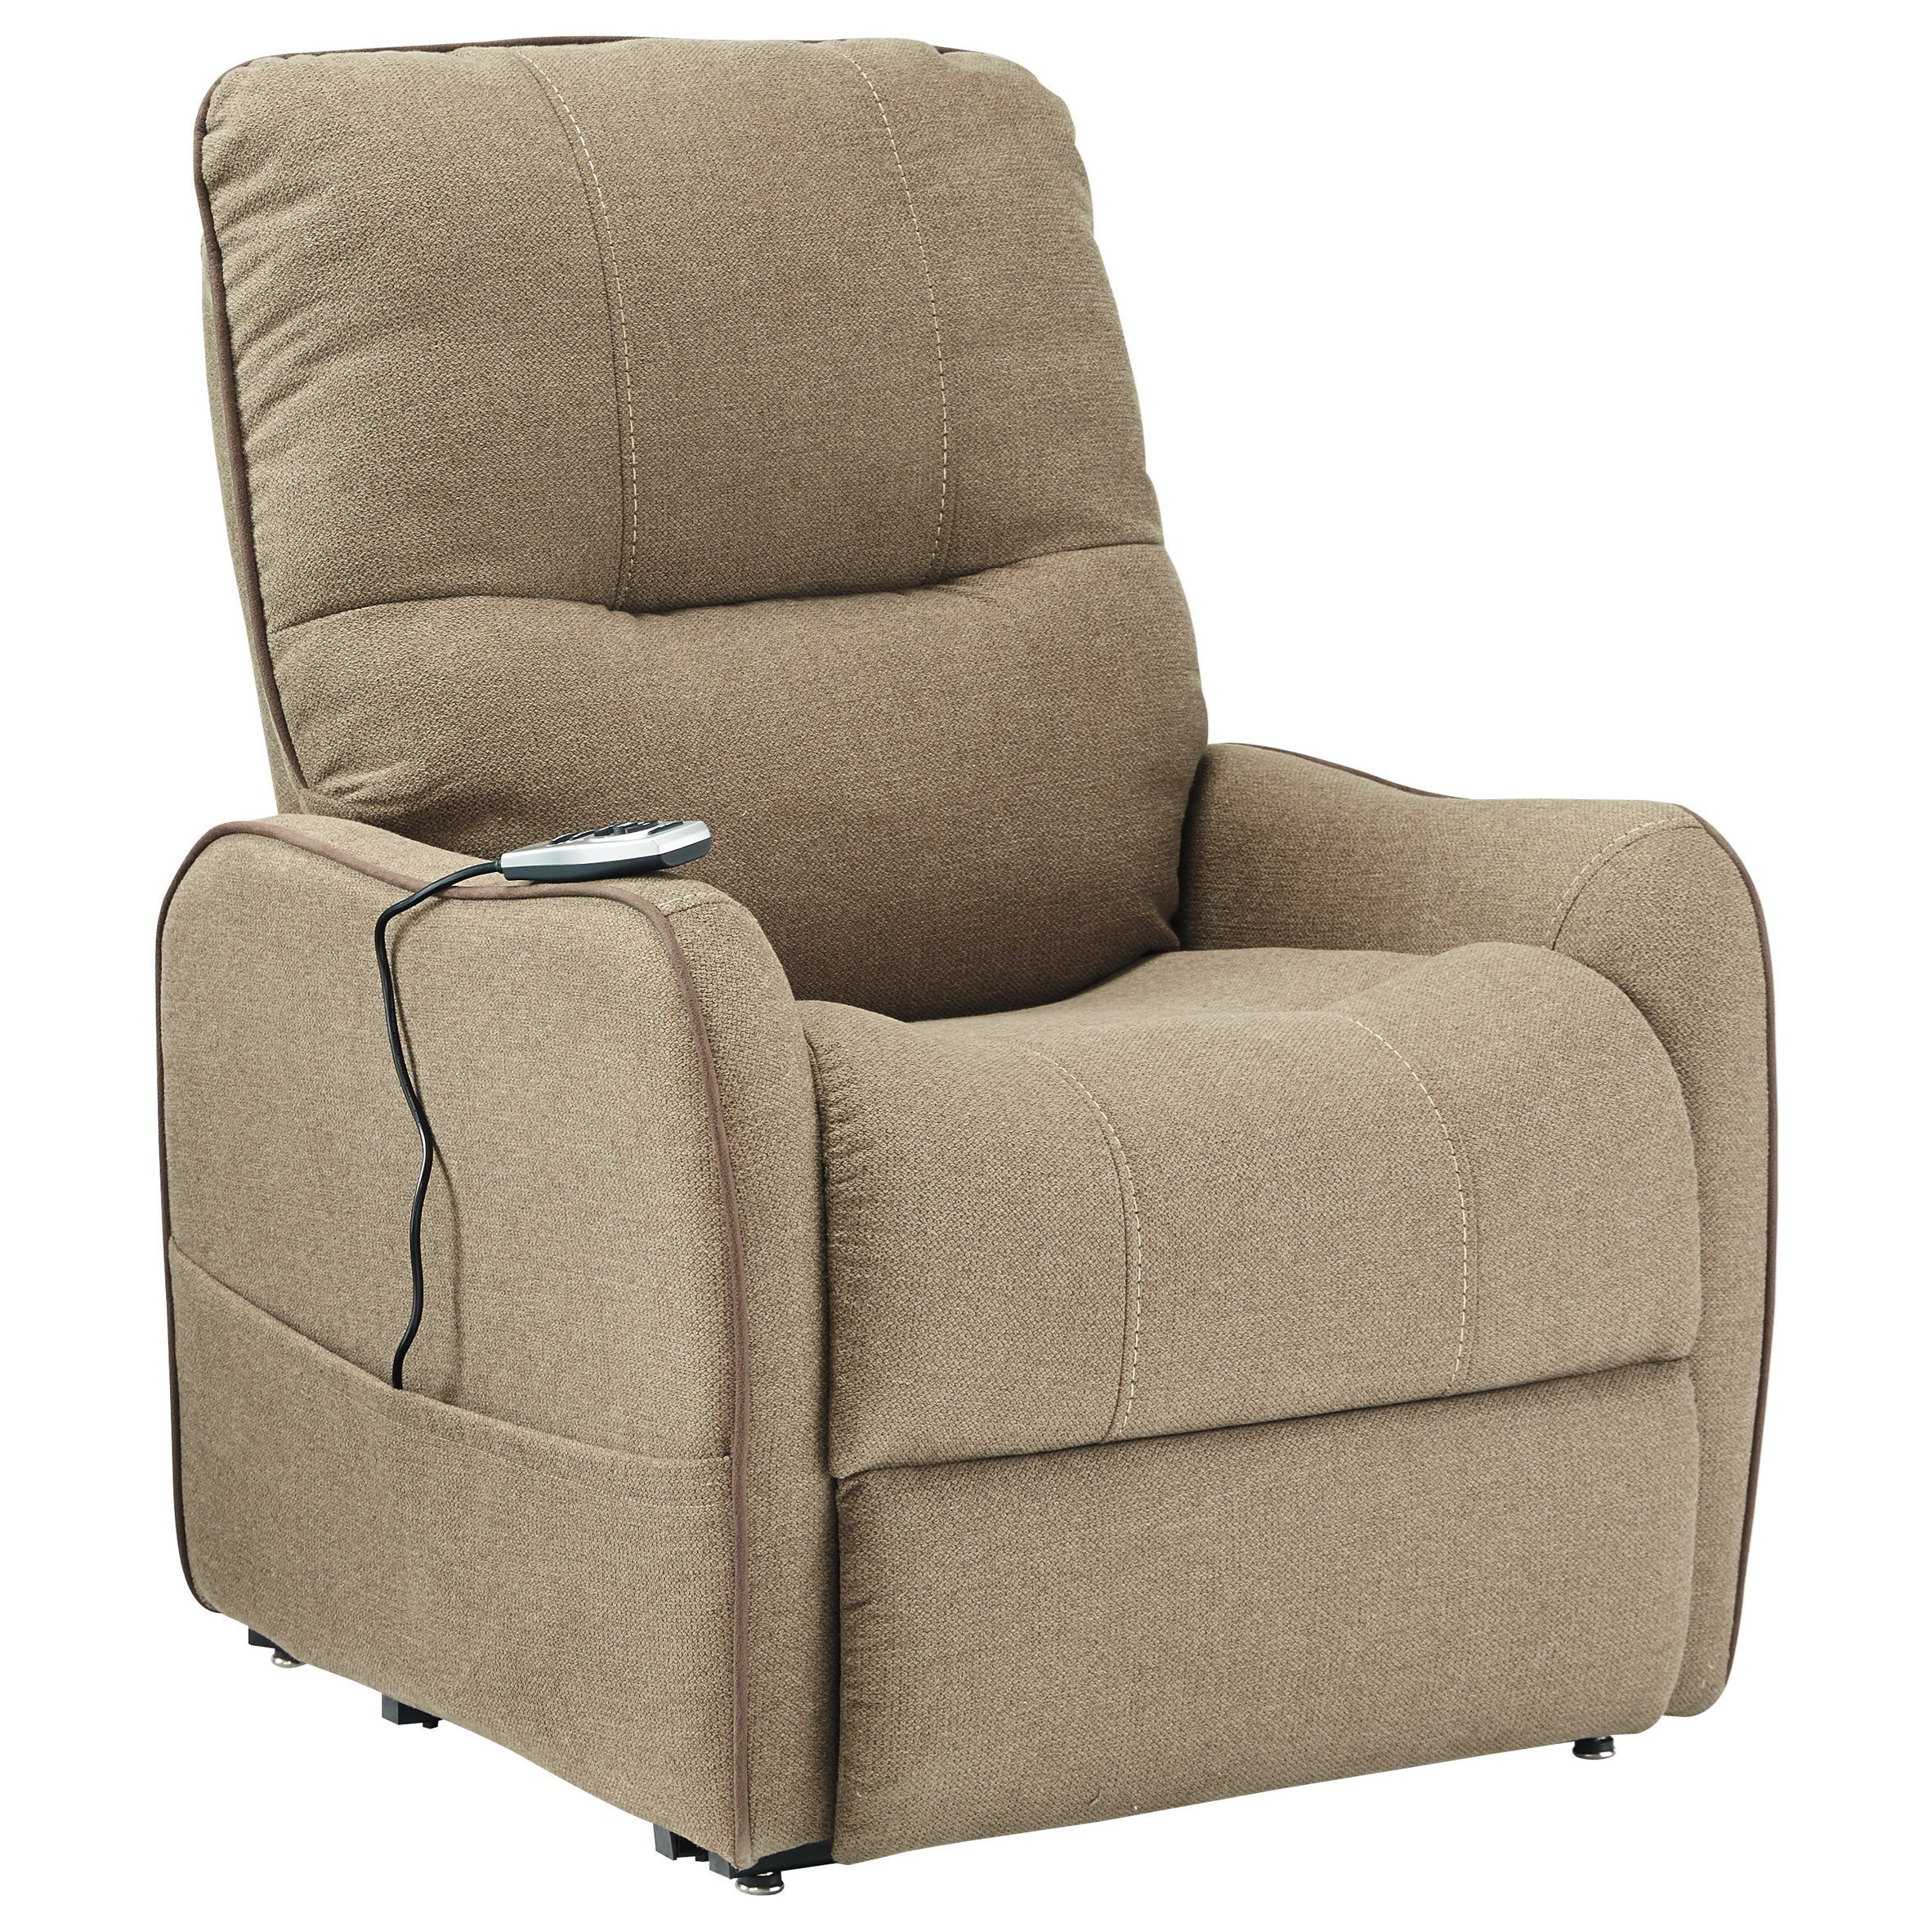 signature design by ashley enjoy power lift recliner with massage and heat